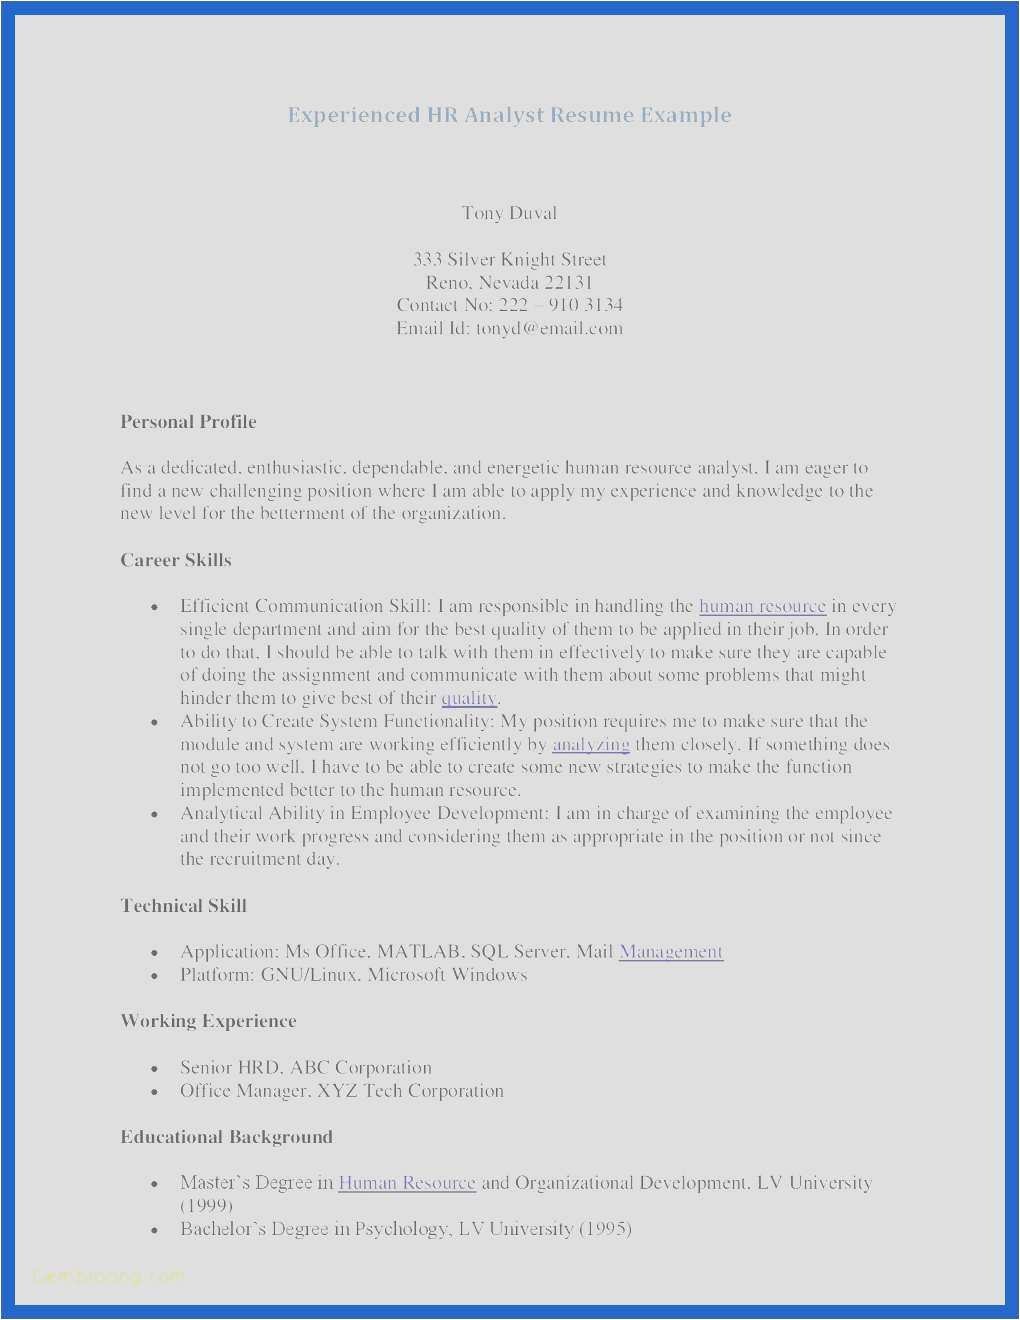 Resume Template Purdue - Apa format Purdue Free Download Purdue Cover Letter Download Letter